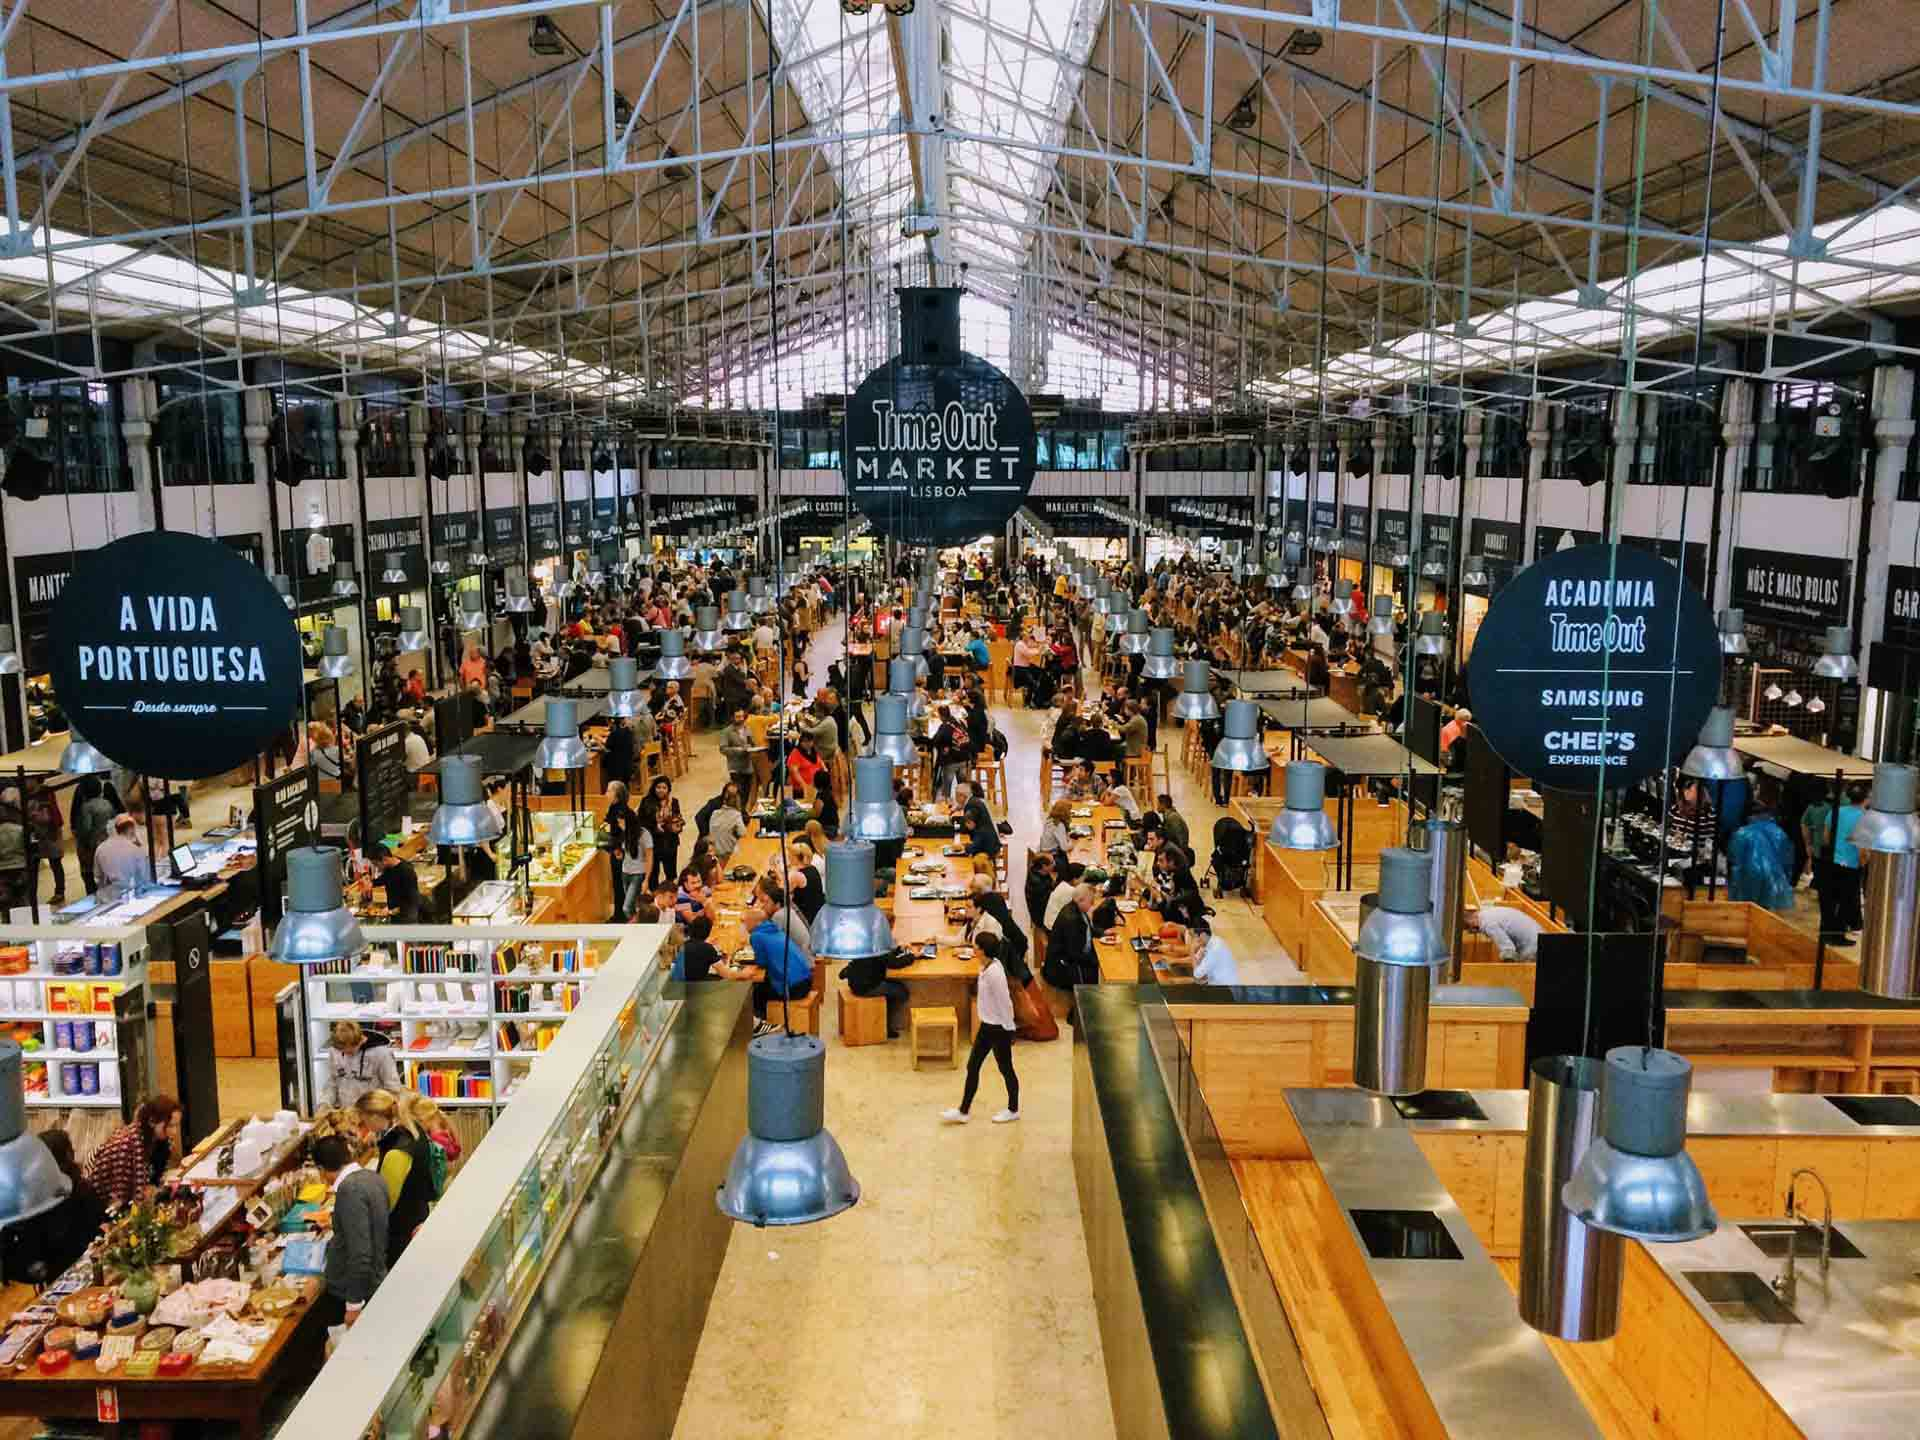 View of the Time Out Market in Lisbon from above